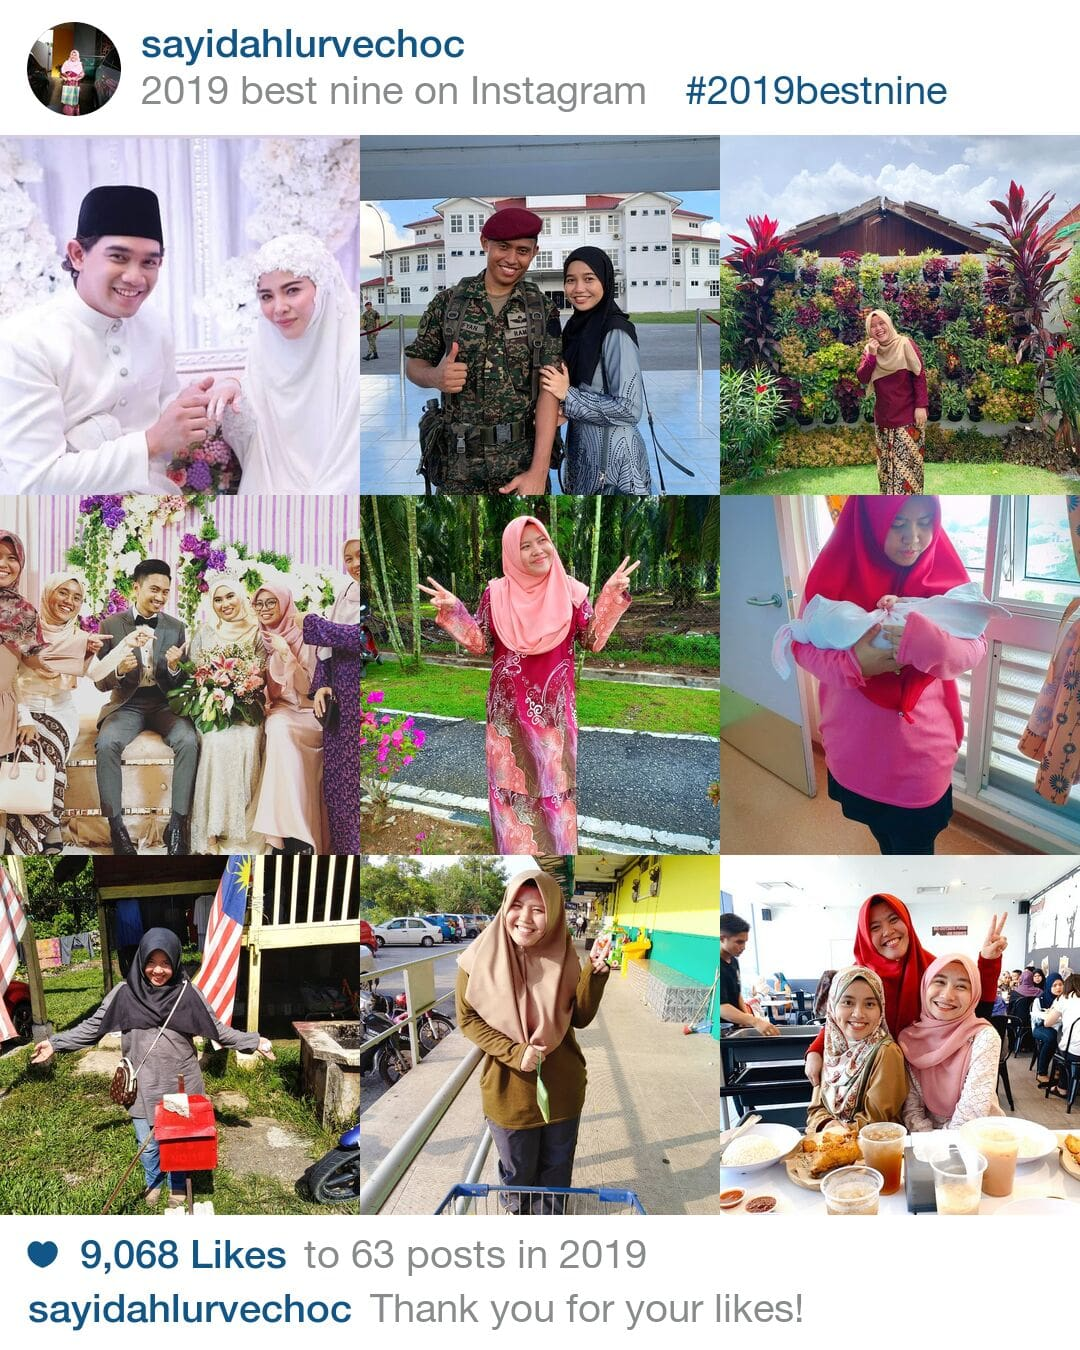 cara buat best nine 2019 on instagram